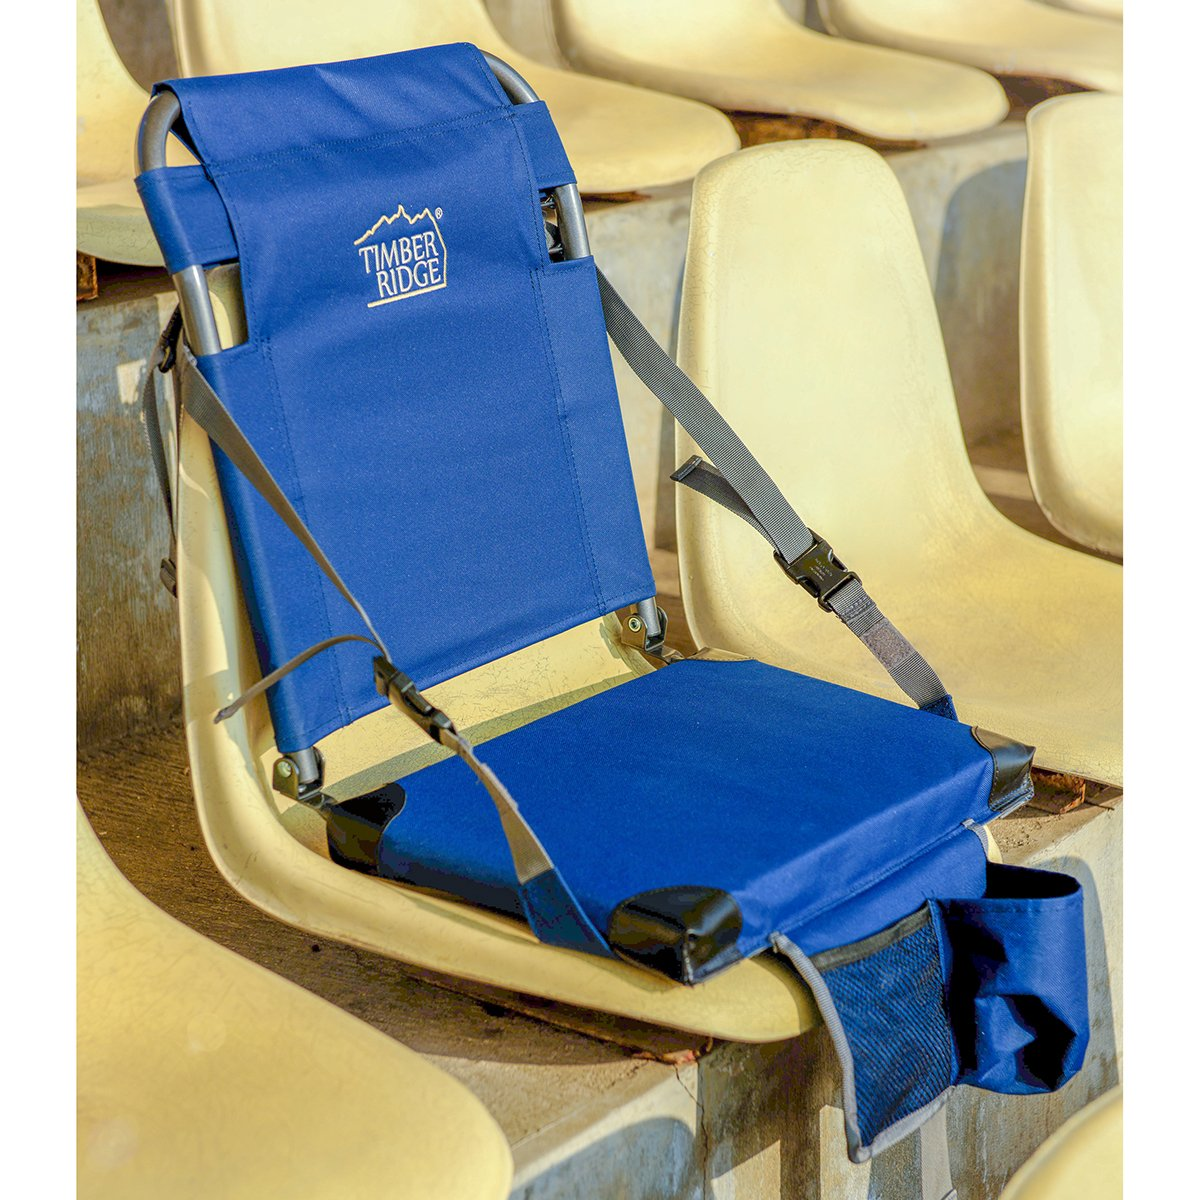 Timber Ridge Stadium Seat for Bleachers Camping Grandstand Chair Cushions Padded Portable with Carry Strap Reclining Back Easy Folding Lightweight for Benches Weekender